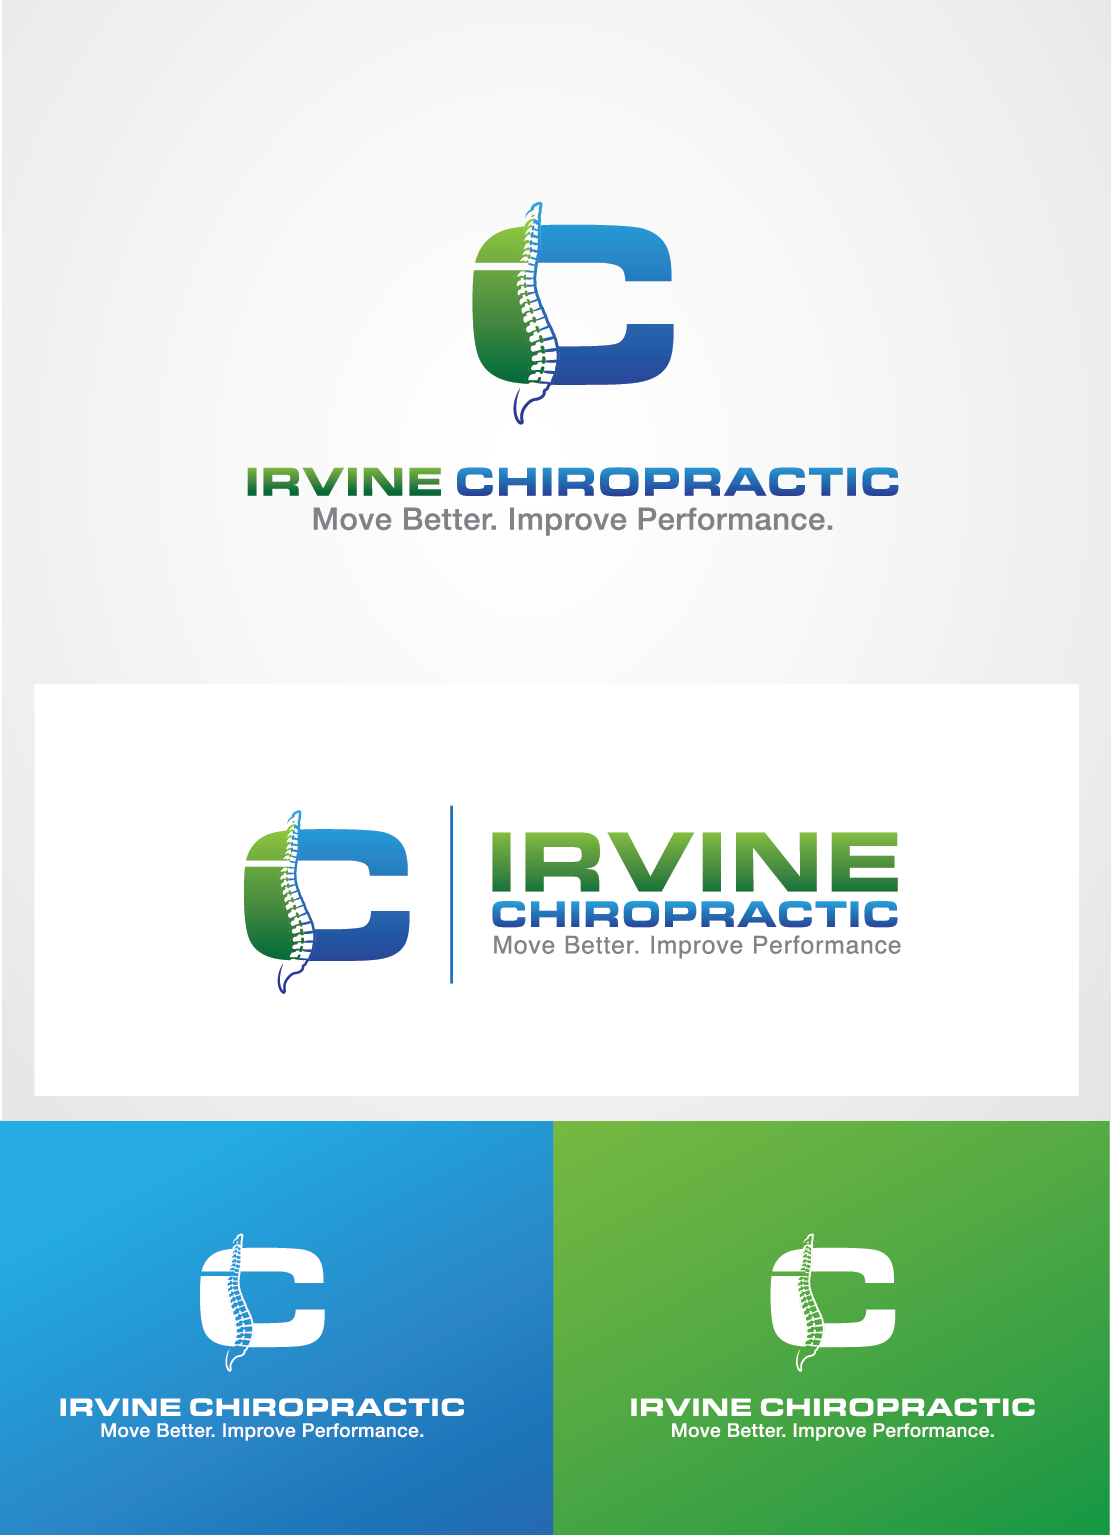 Create a Logo for Irvine Chiropractic Clinic that grabs the attention and keeps it.